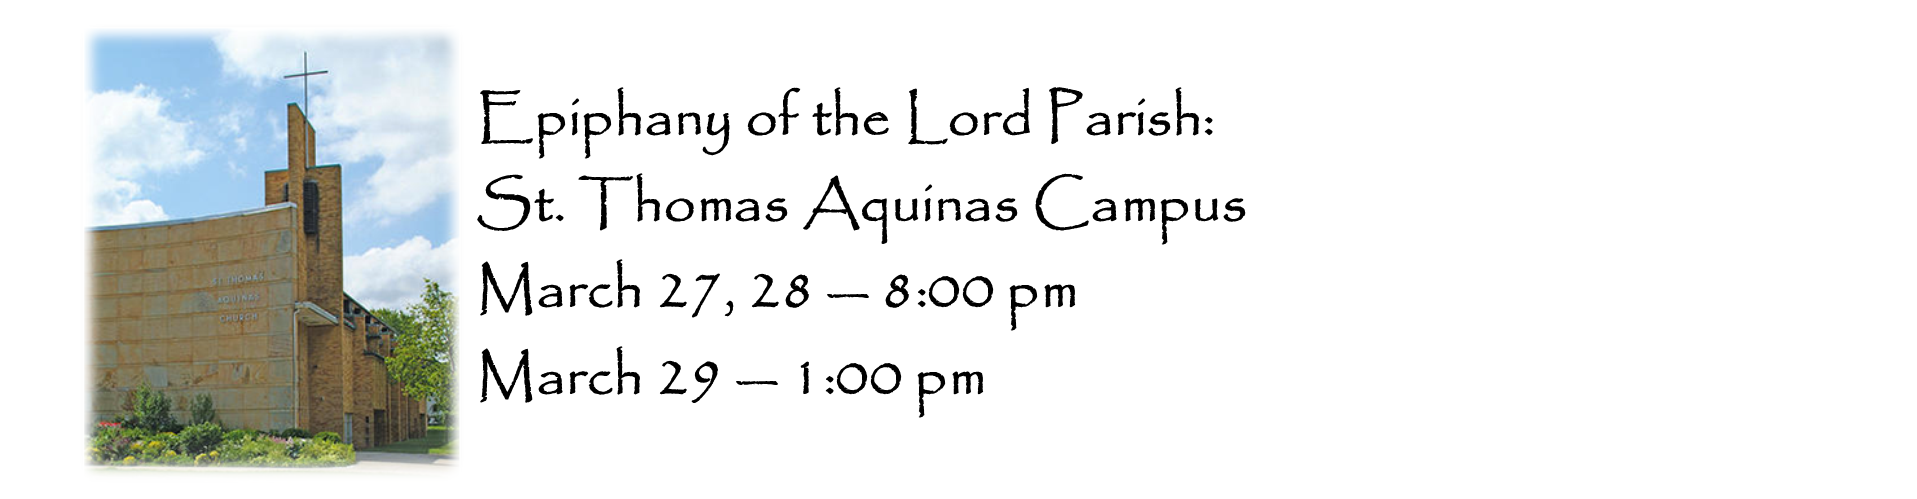 Epiphany of the Lord St. Thomas Aquinas Campus